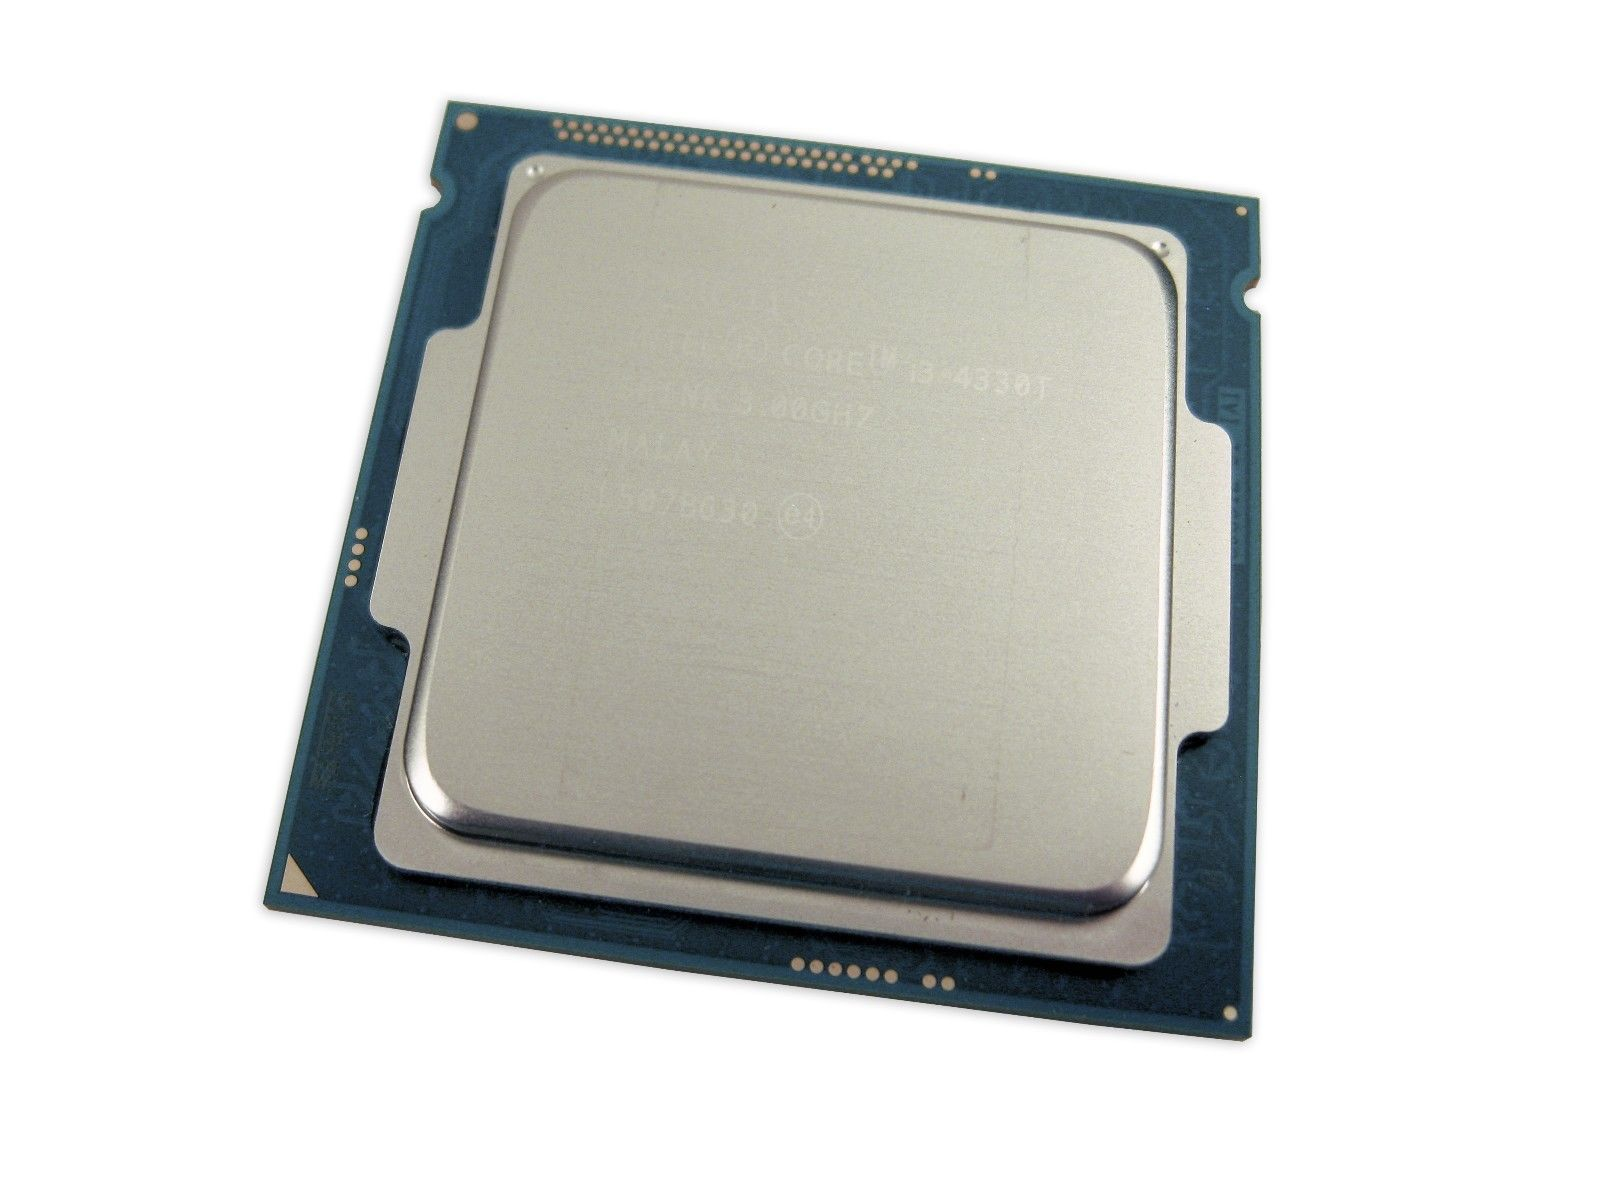 Lenovo 1100933 Intel i3-4330T 3.0GHz LGA1150 2 Core 4MB L3 CPU Processor SR1NK